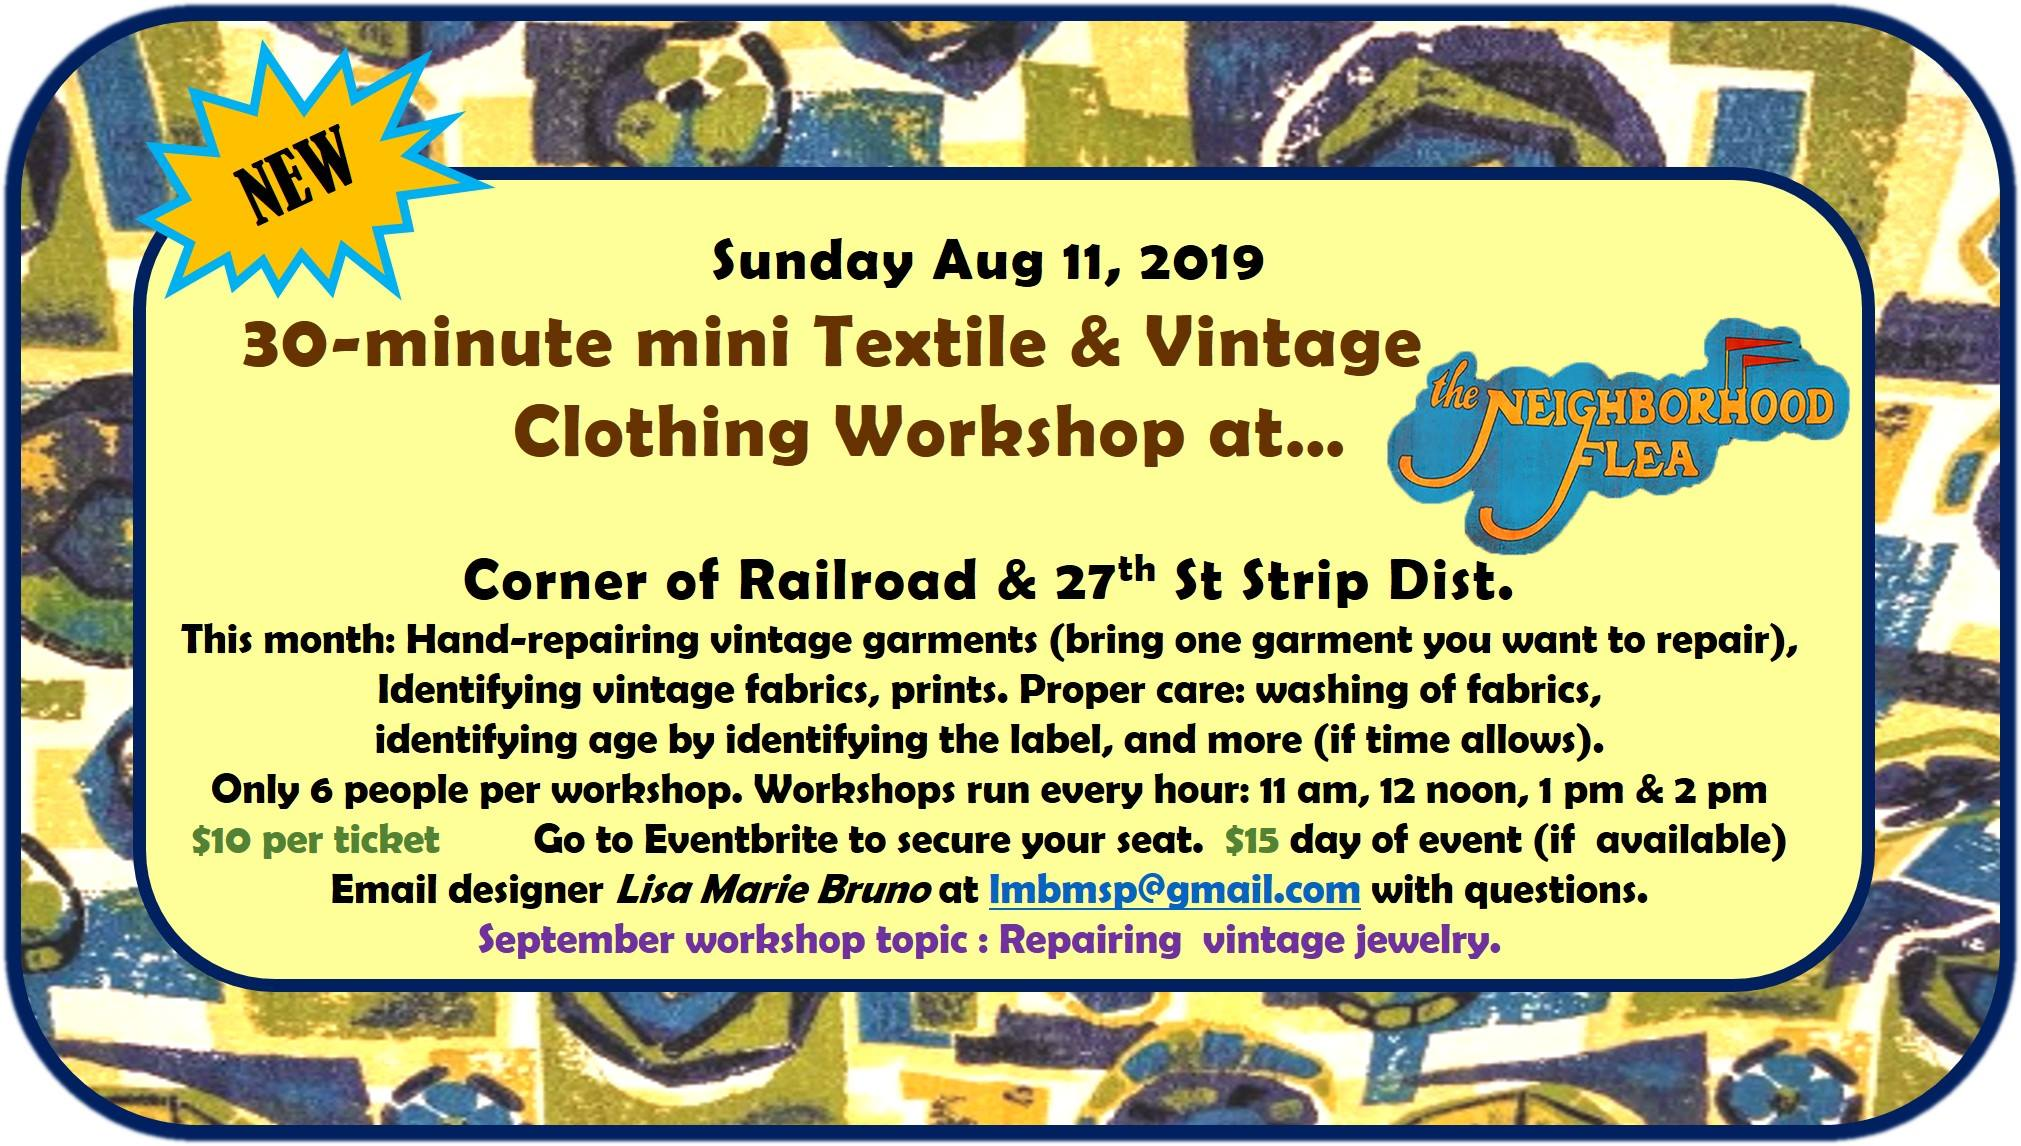 Lisa Marie BrunoVINTAGE Textile & Clothing Workshop - August 11, 2019Workshops run every hour from 11am-2pm$10 in advance, $15 day of eventREGISTER HERE